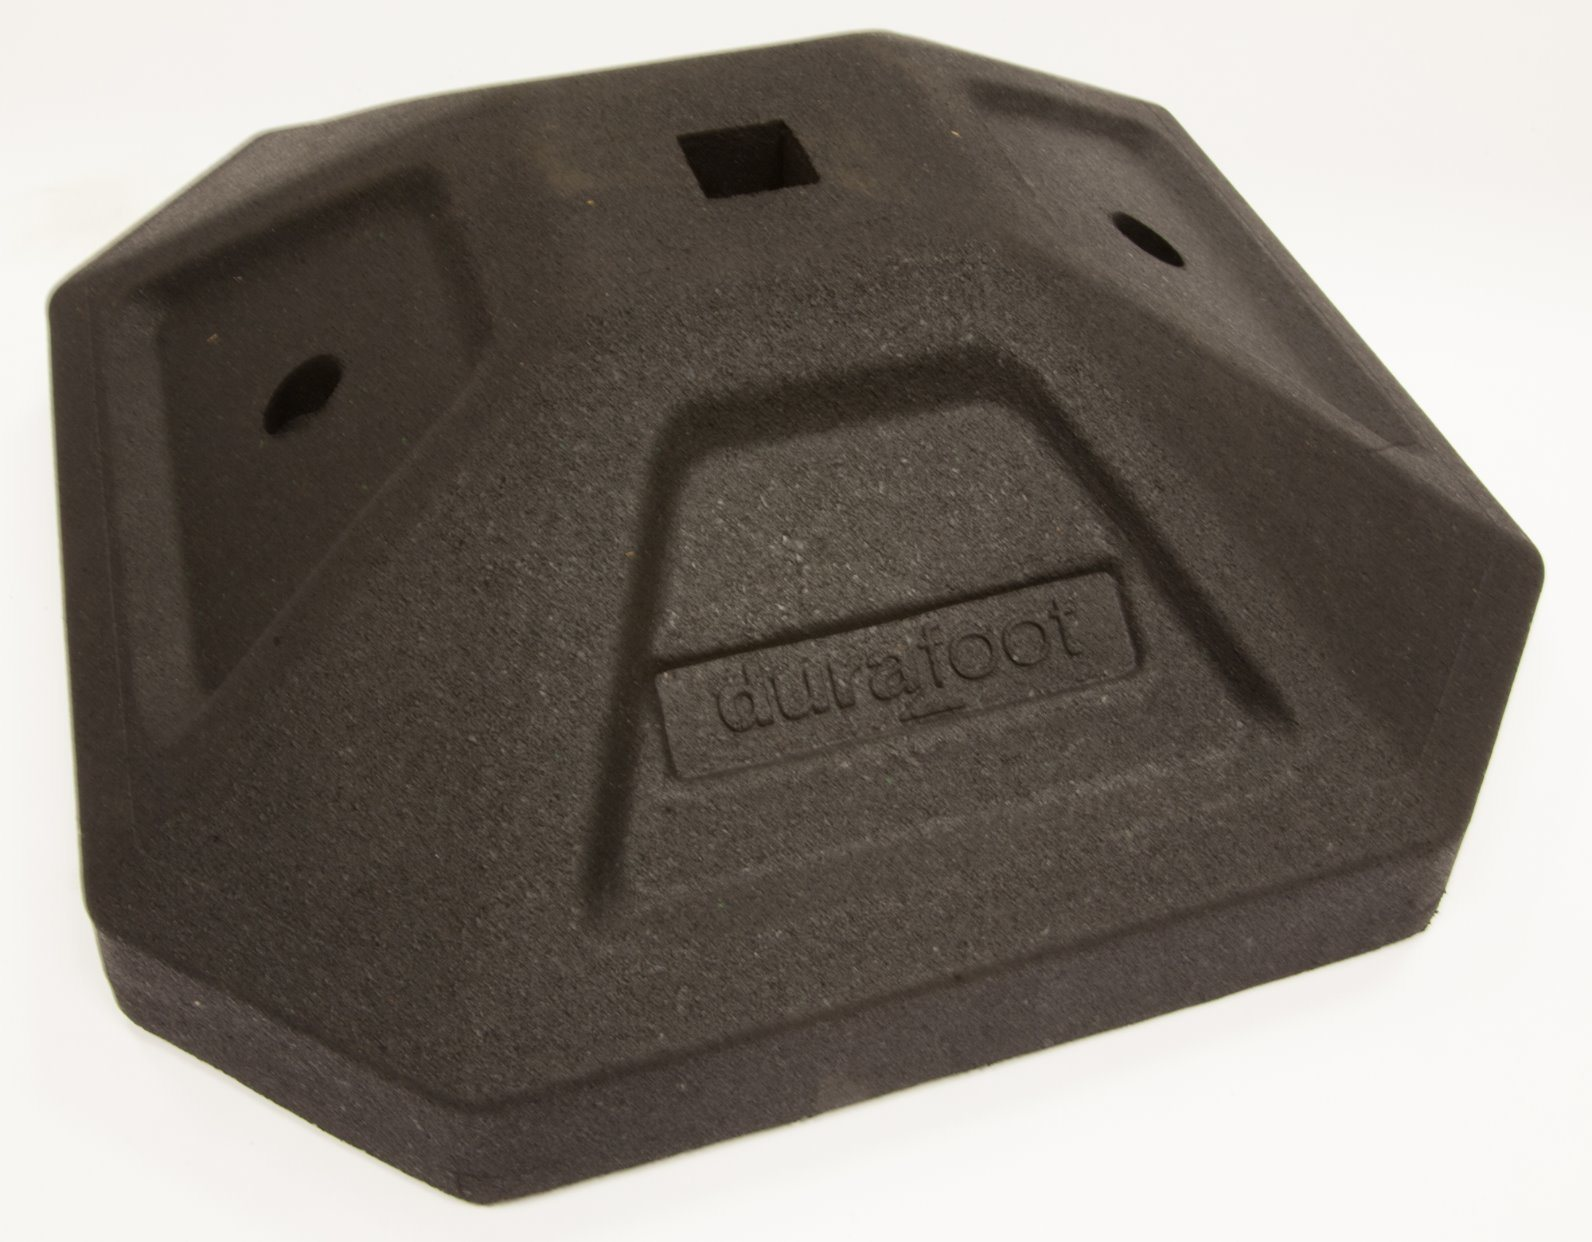 Durafoot 500 Square Air-Condition Foot (50X50) Heavy 25kg